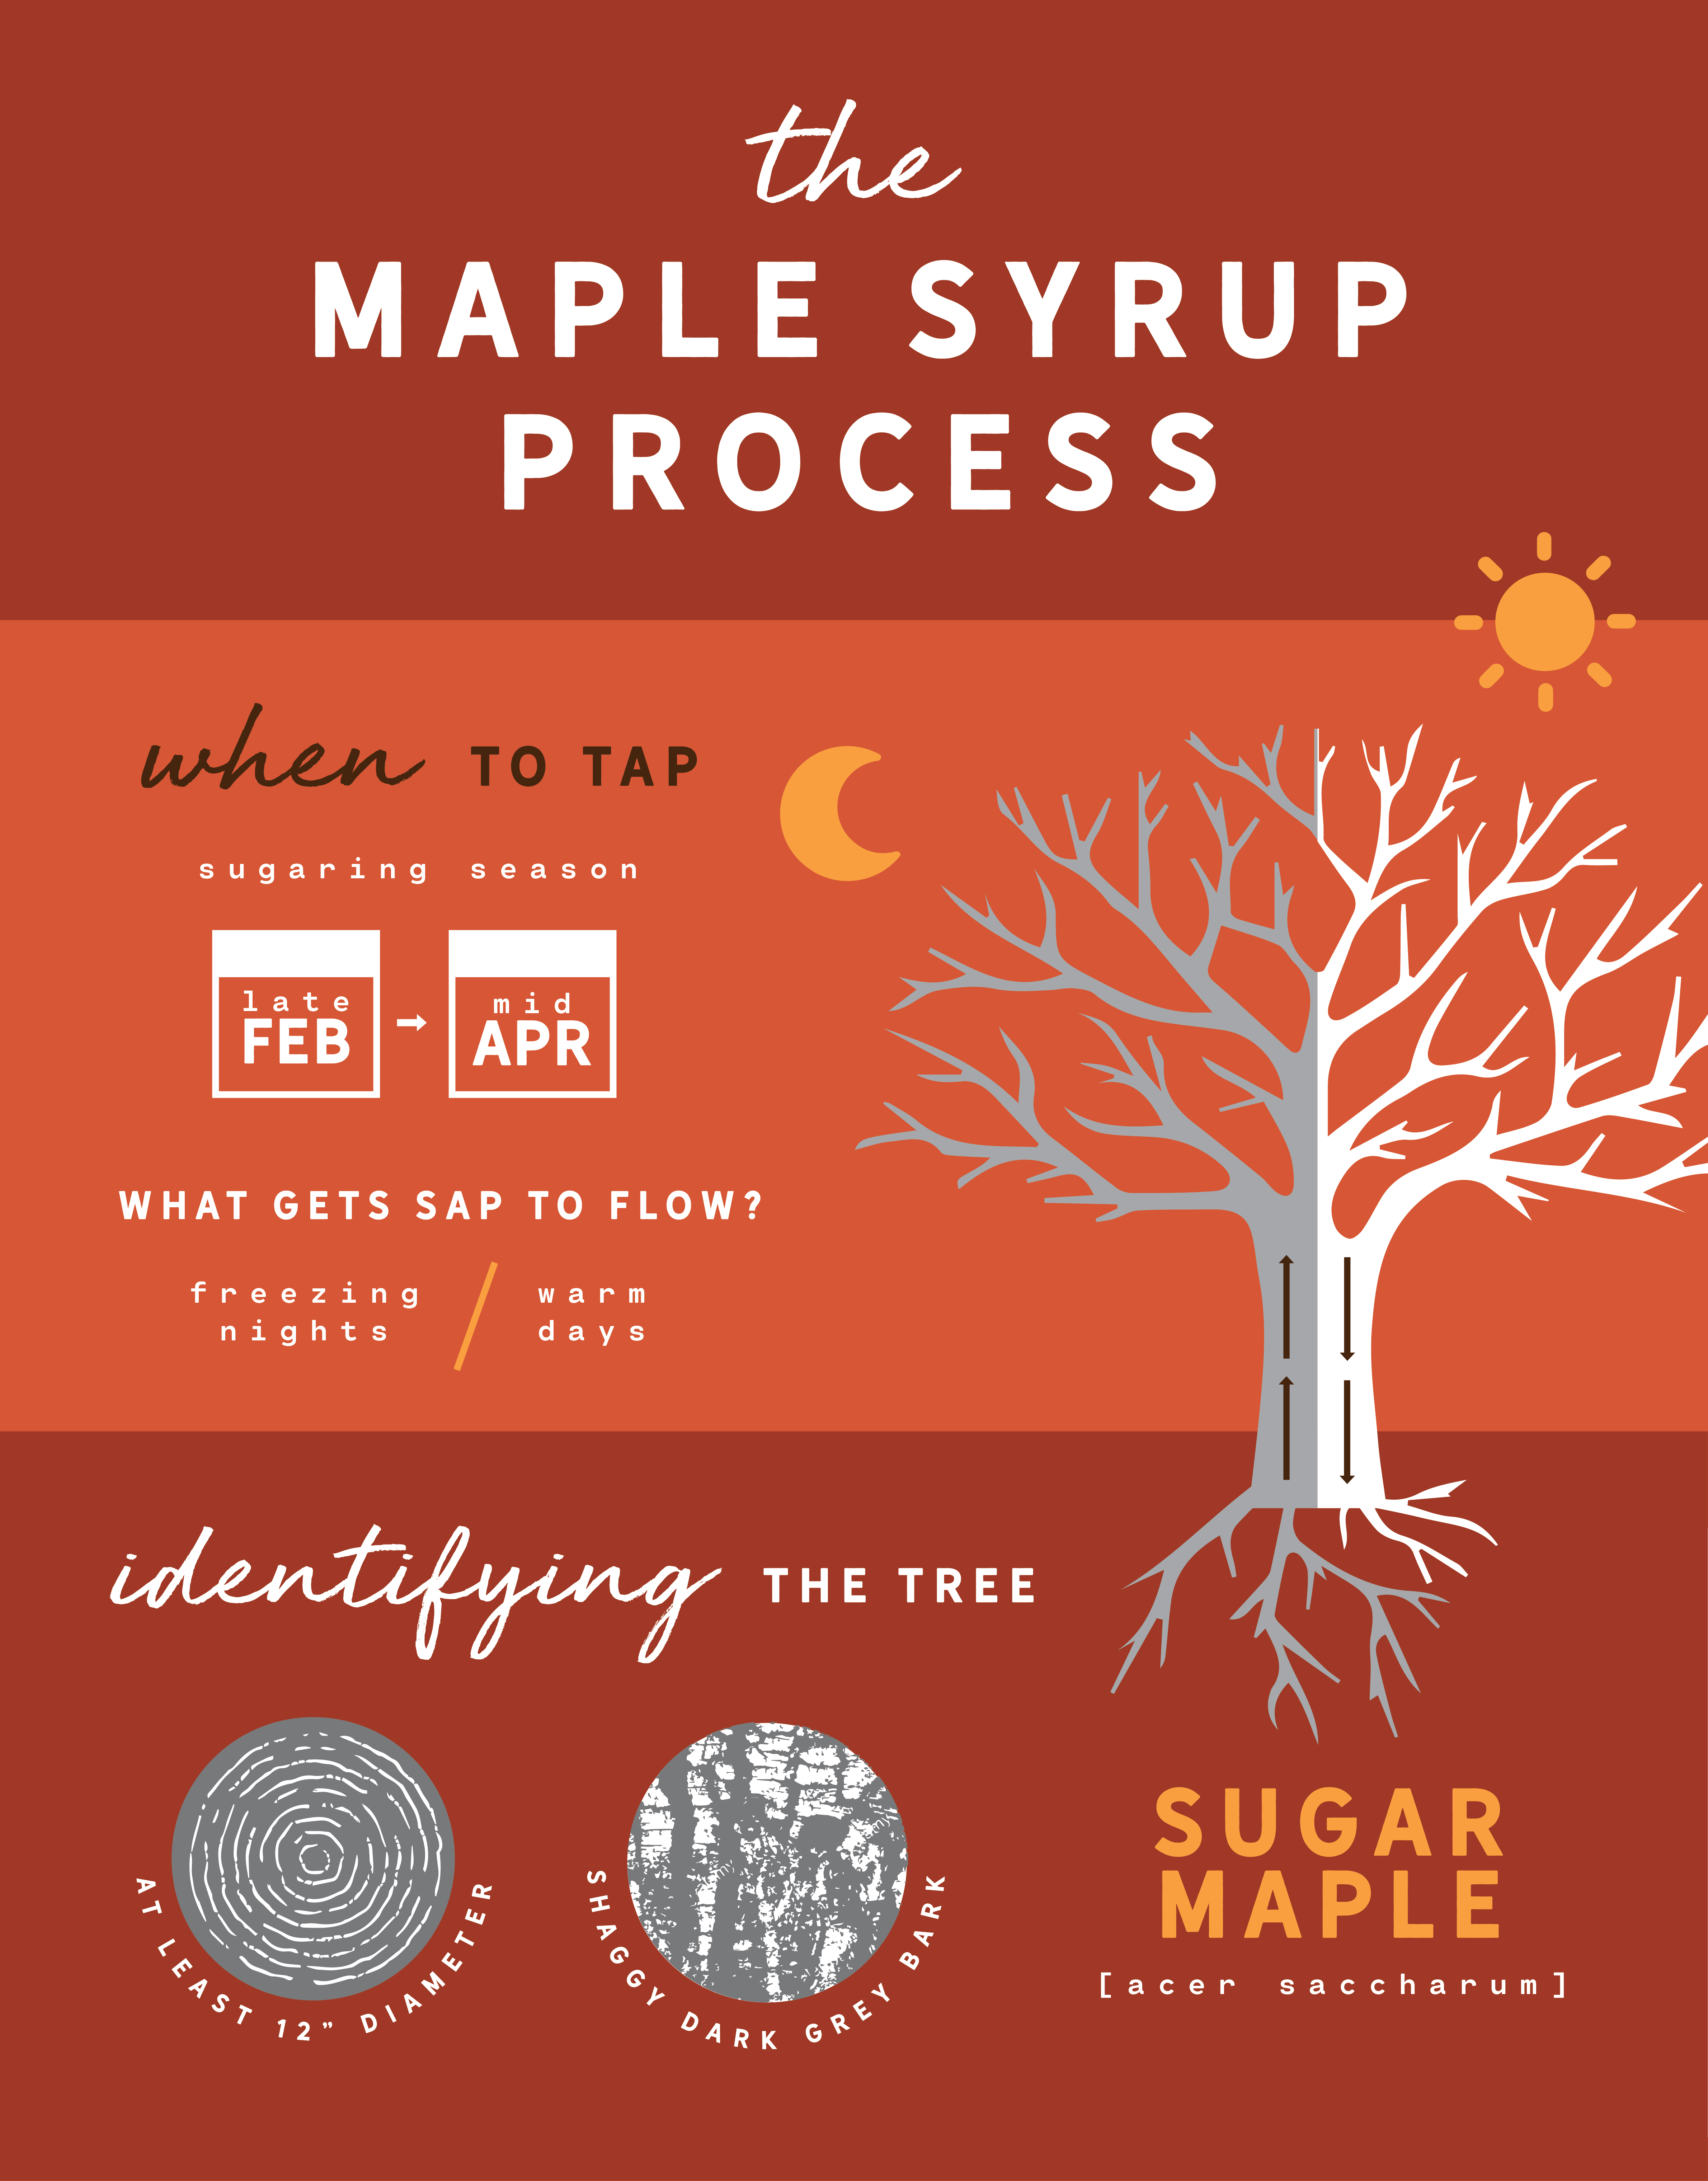 When to tap a maple tree